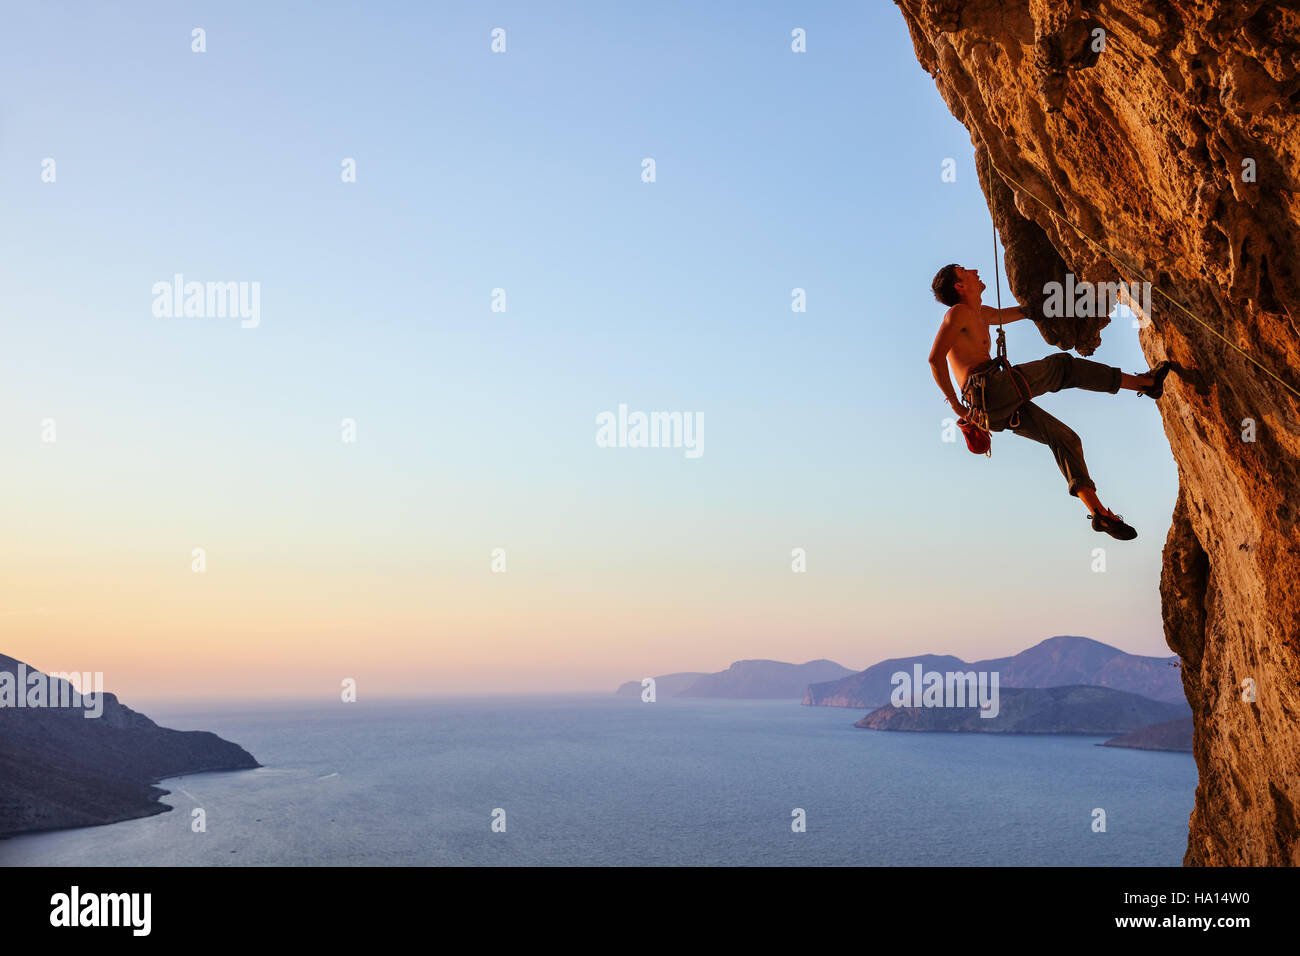 Rock climber resting alors que l'escalade falaise en surplomb Photo Stock